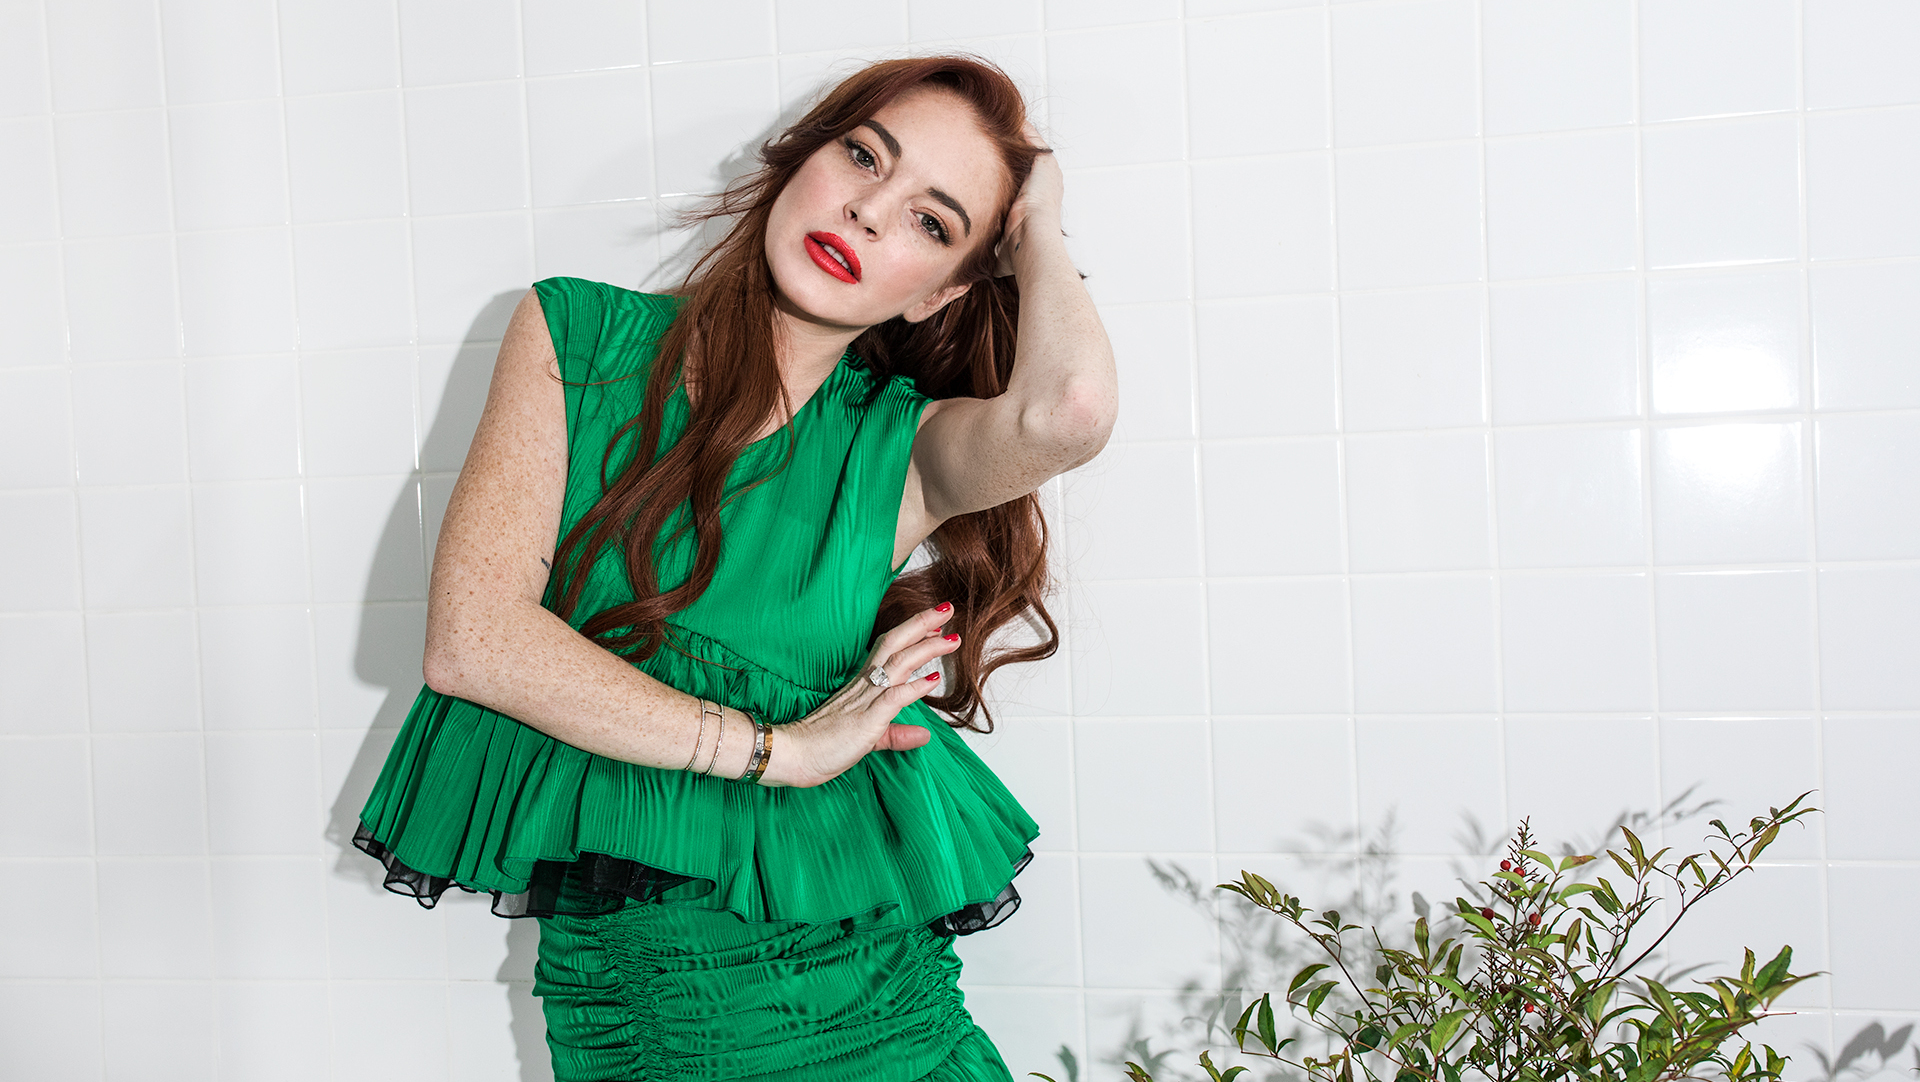 Lindsay Lohan Wants You to Forget Her Past